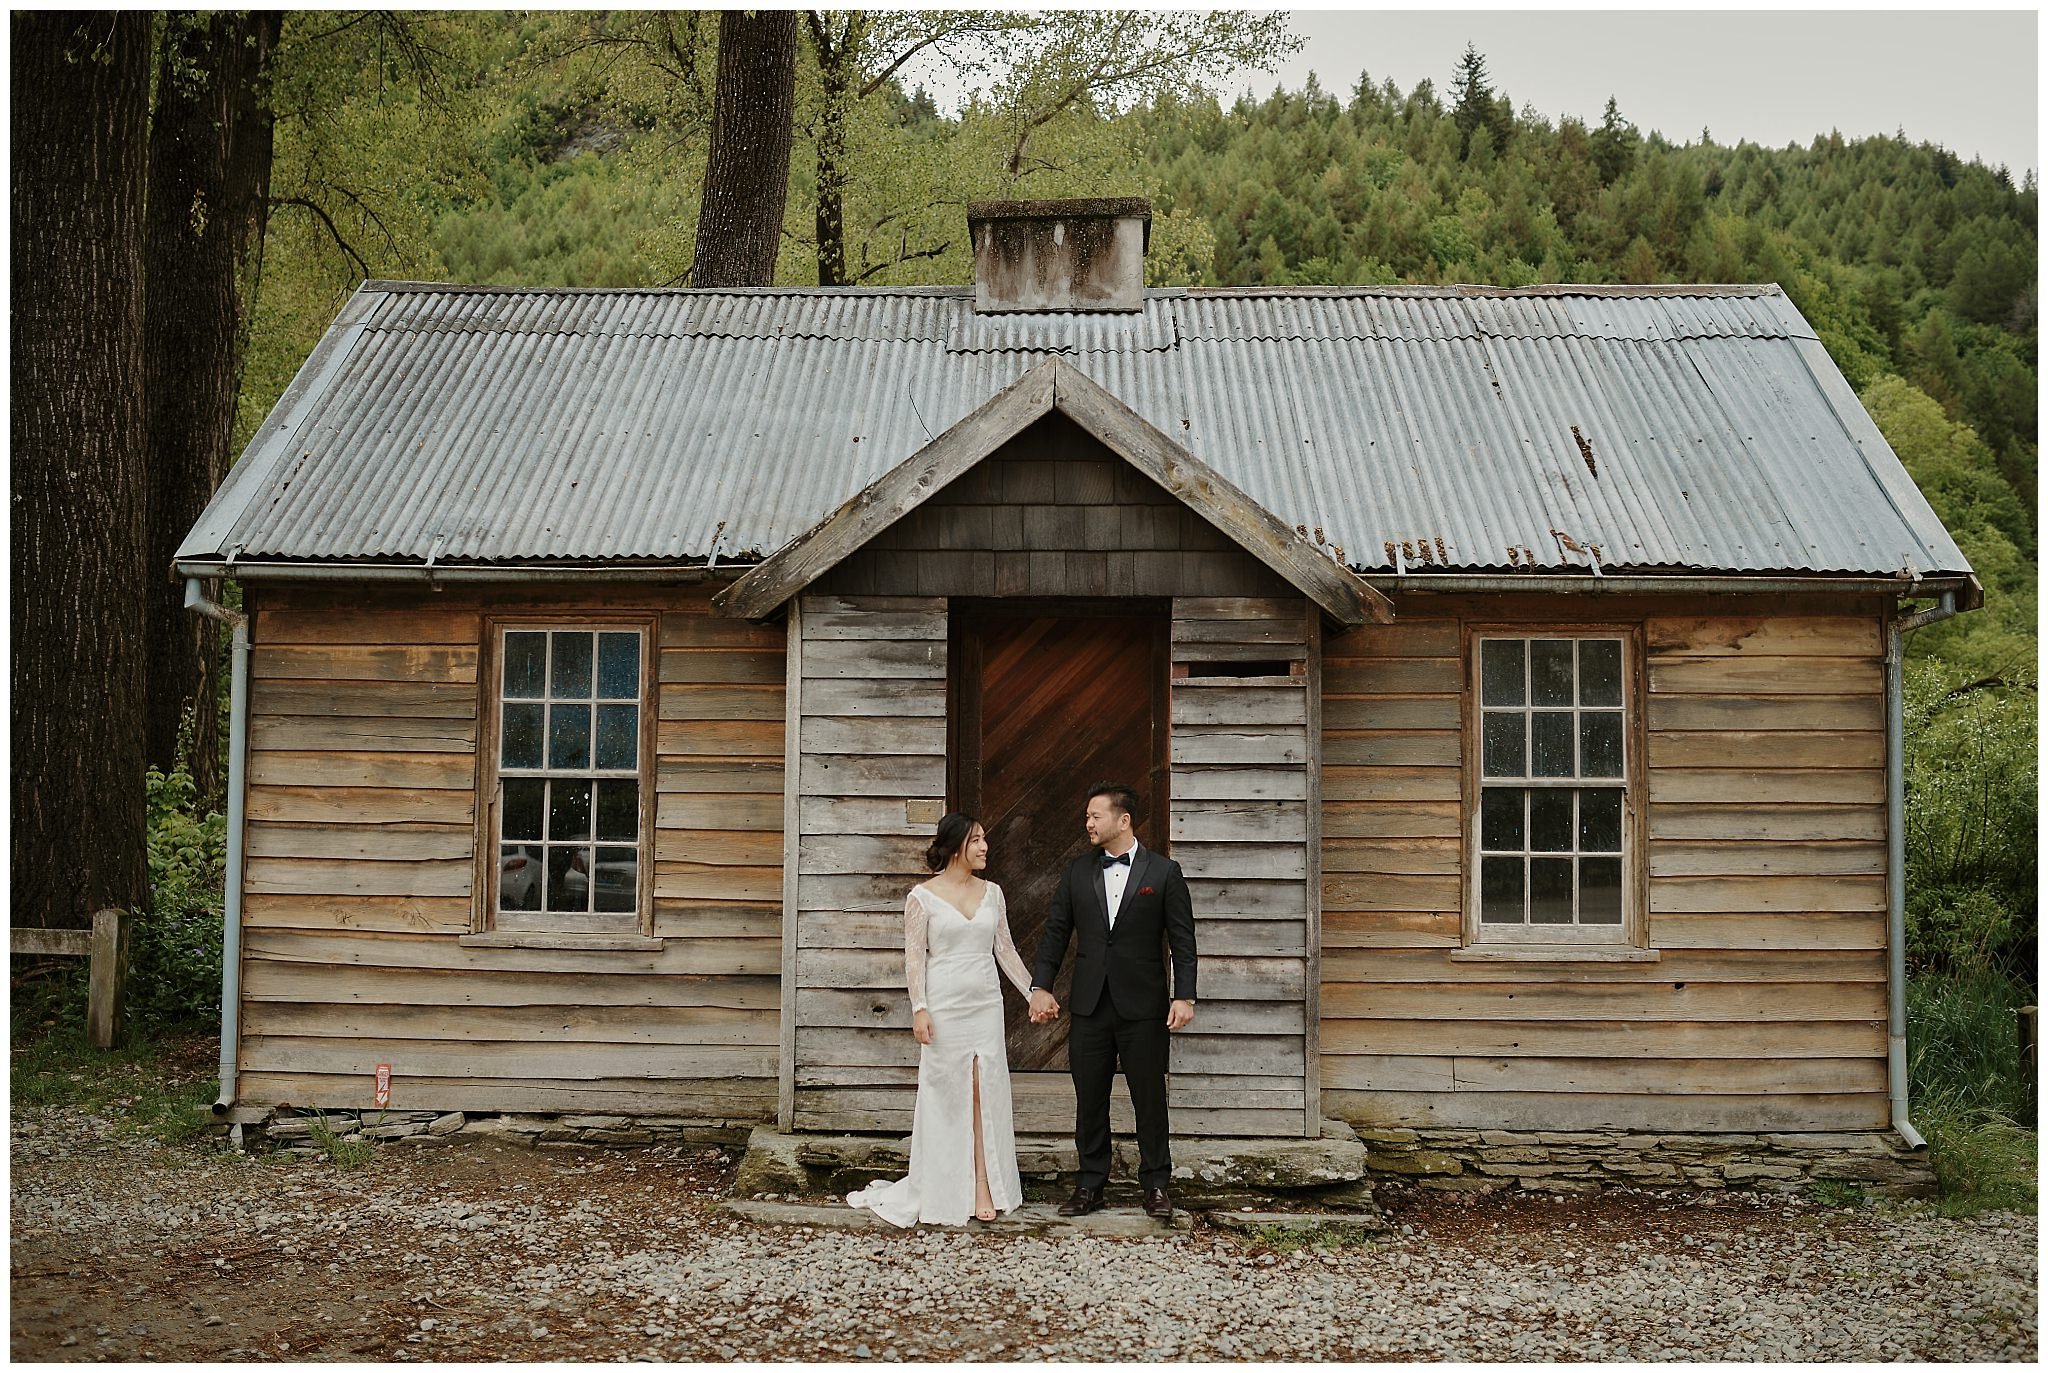 Queenstown New Zealand Prewedding Photographer_0075.jpg